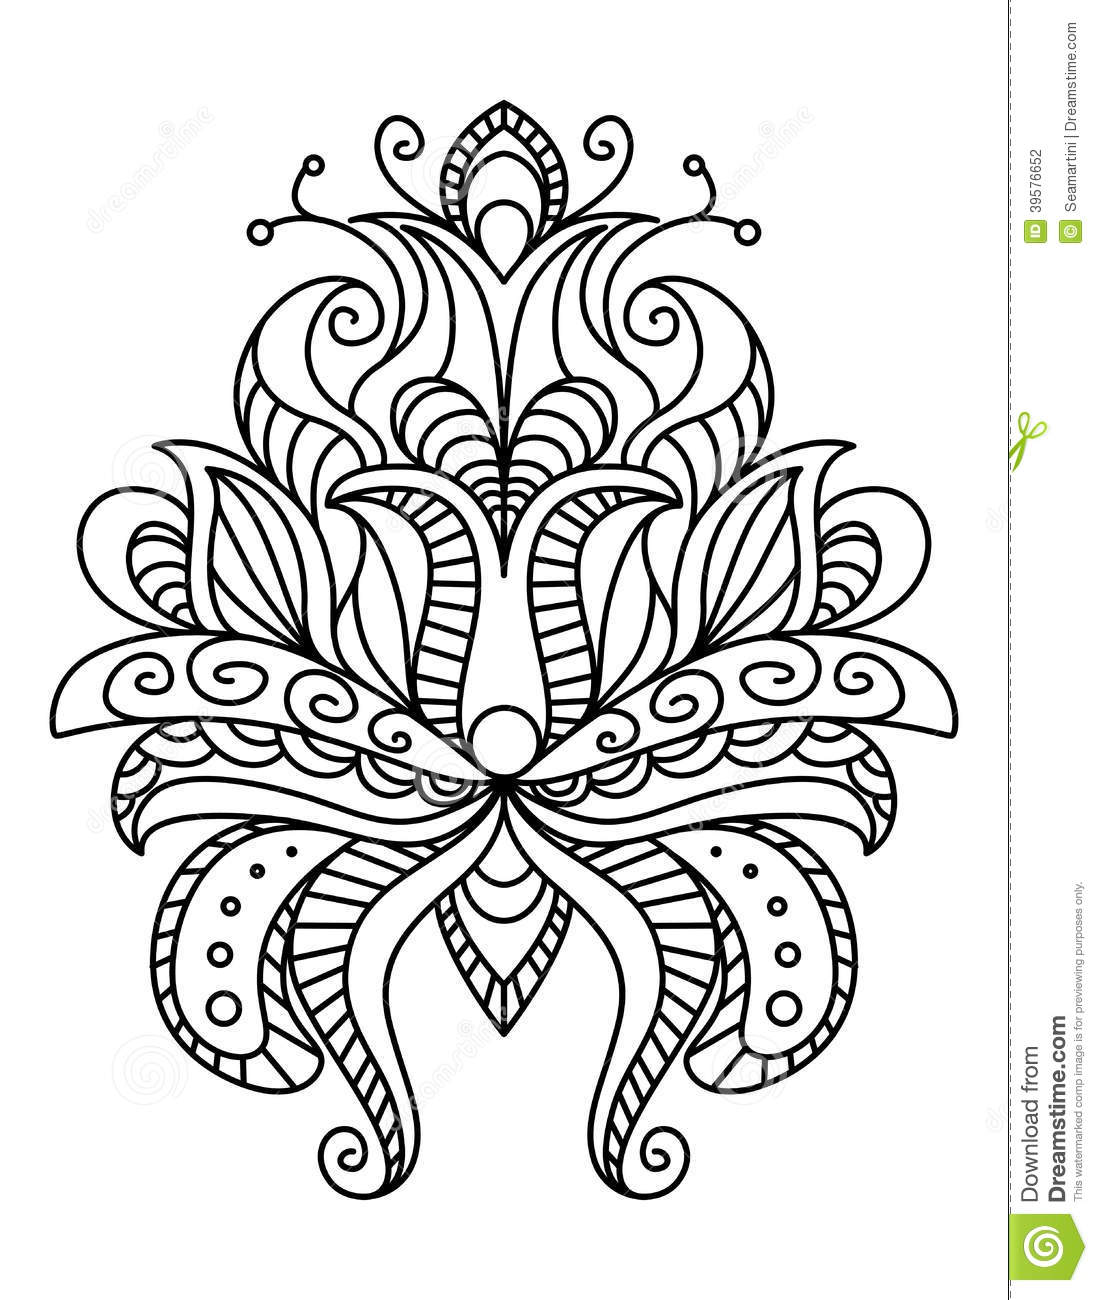 Paisley Floral Line Drawings